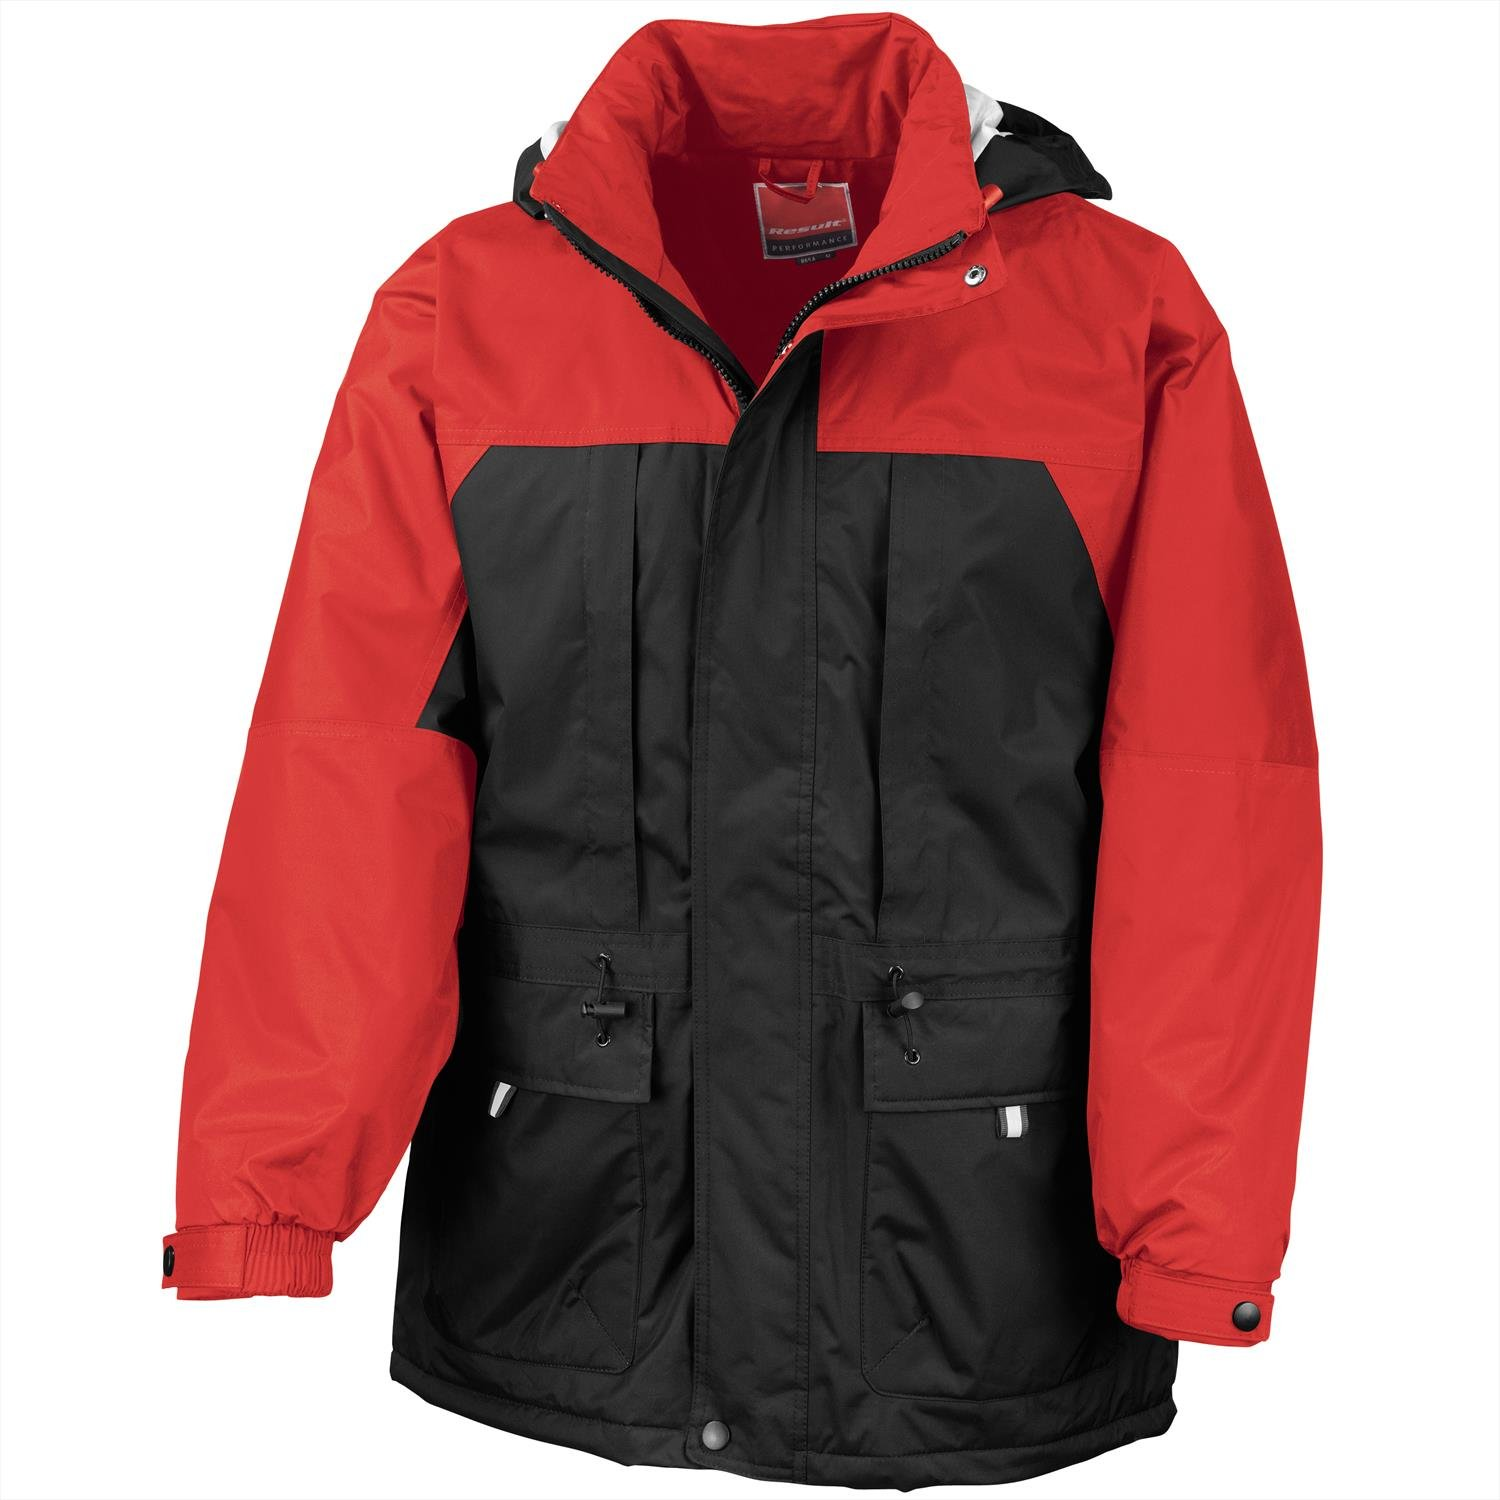 Result Multi function winter jacket Black/Red 2XL